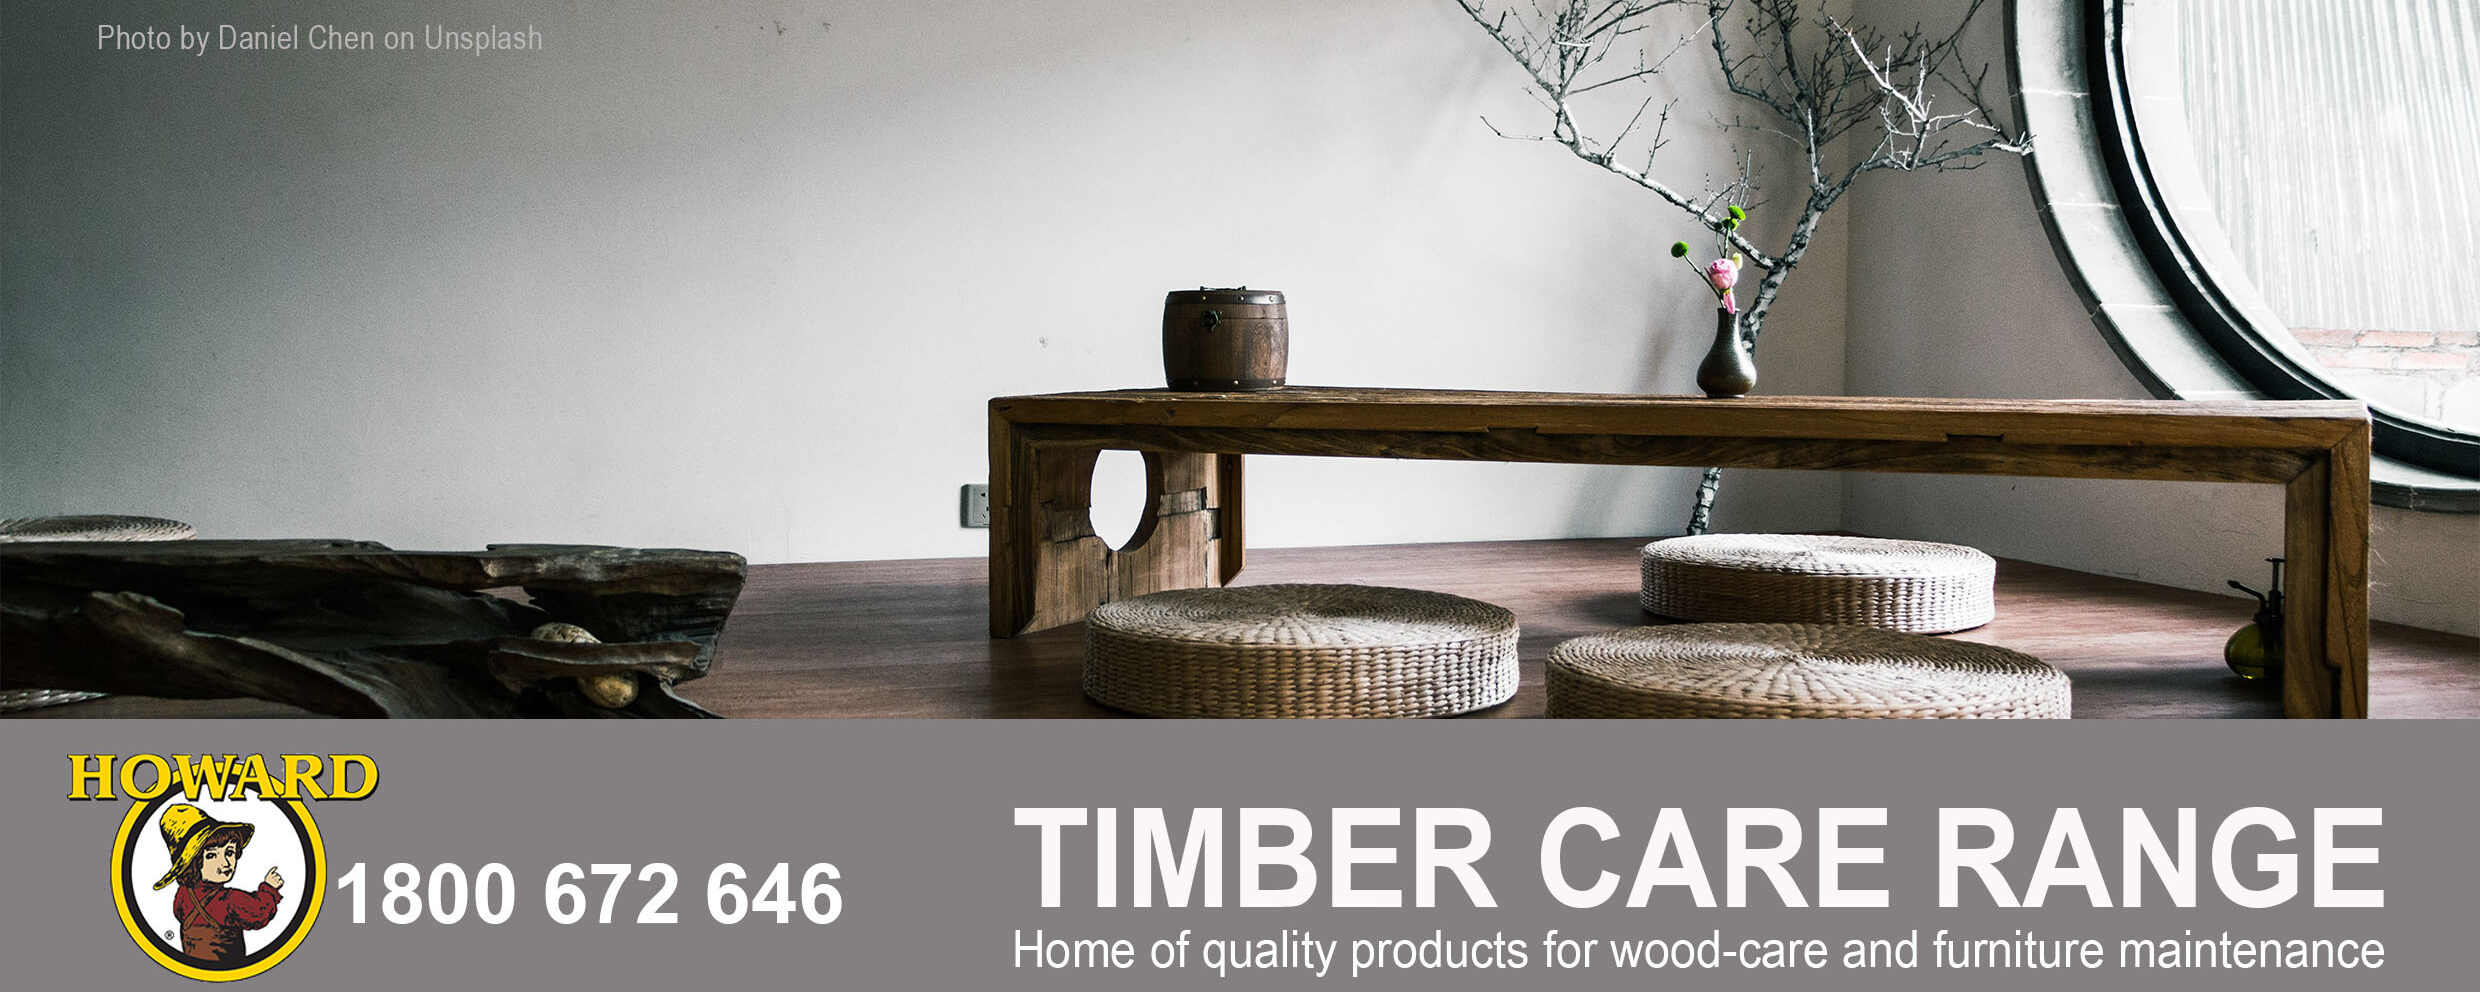 Howard-products-timber-care